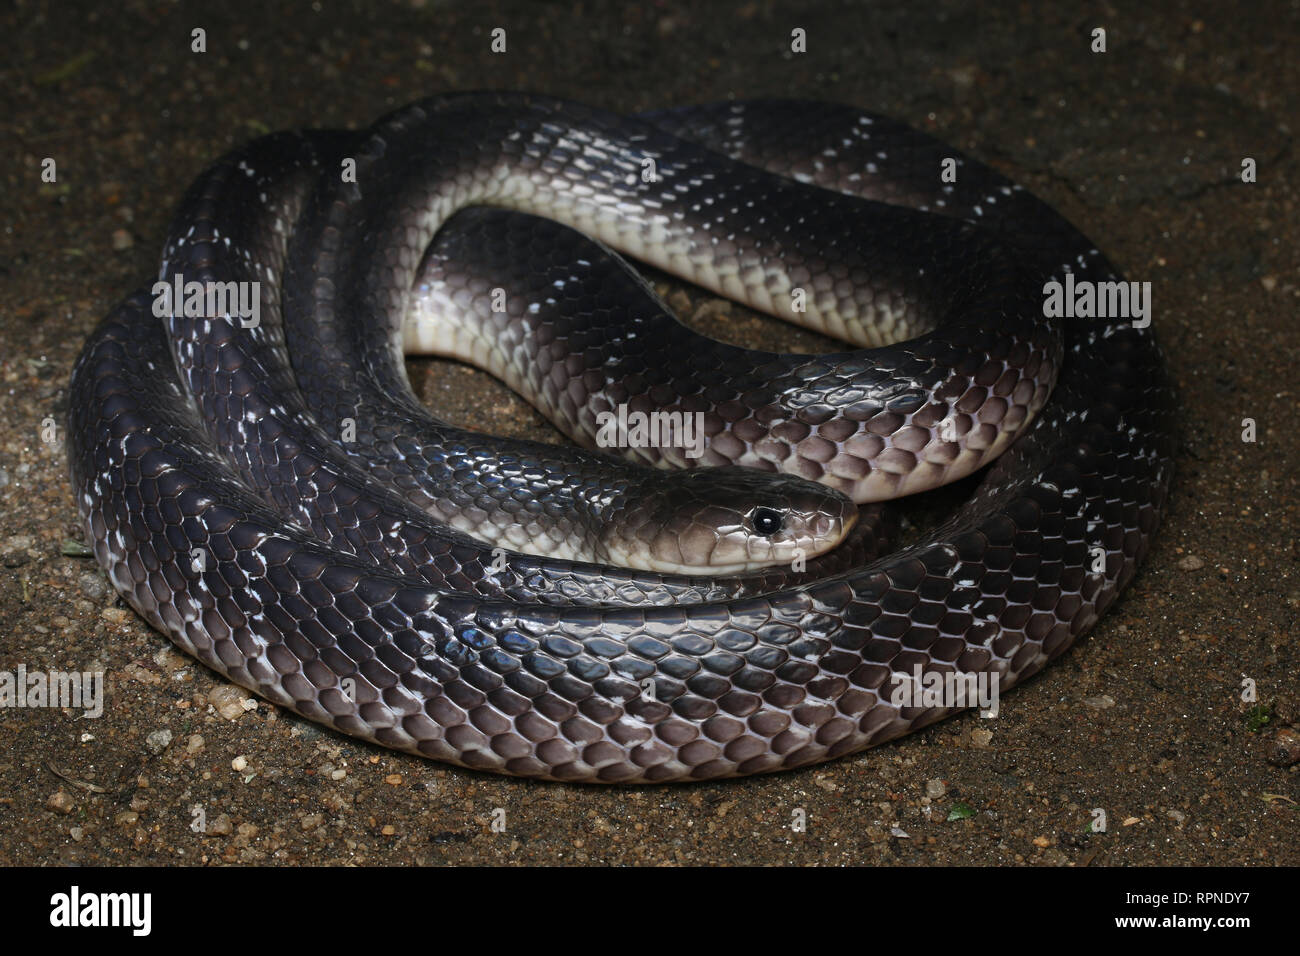 Common Krait, Bungarus caeruleus Stock Photo